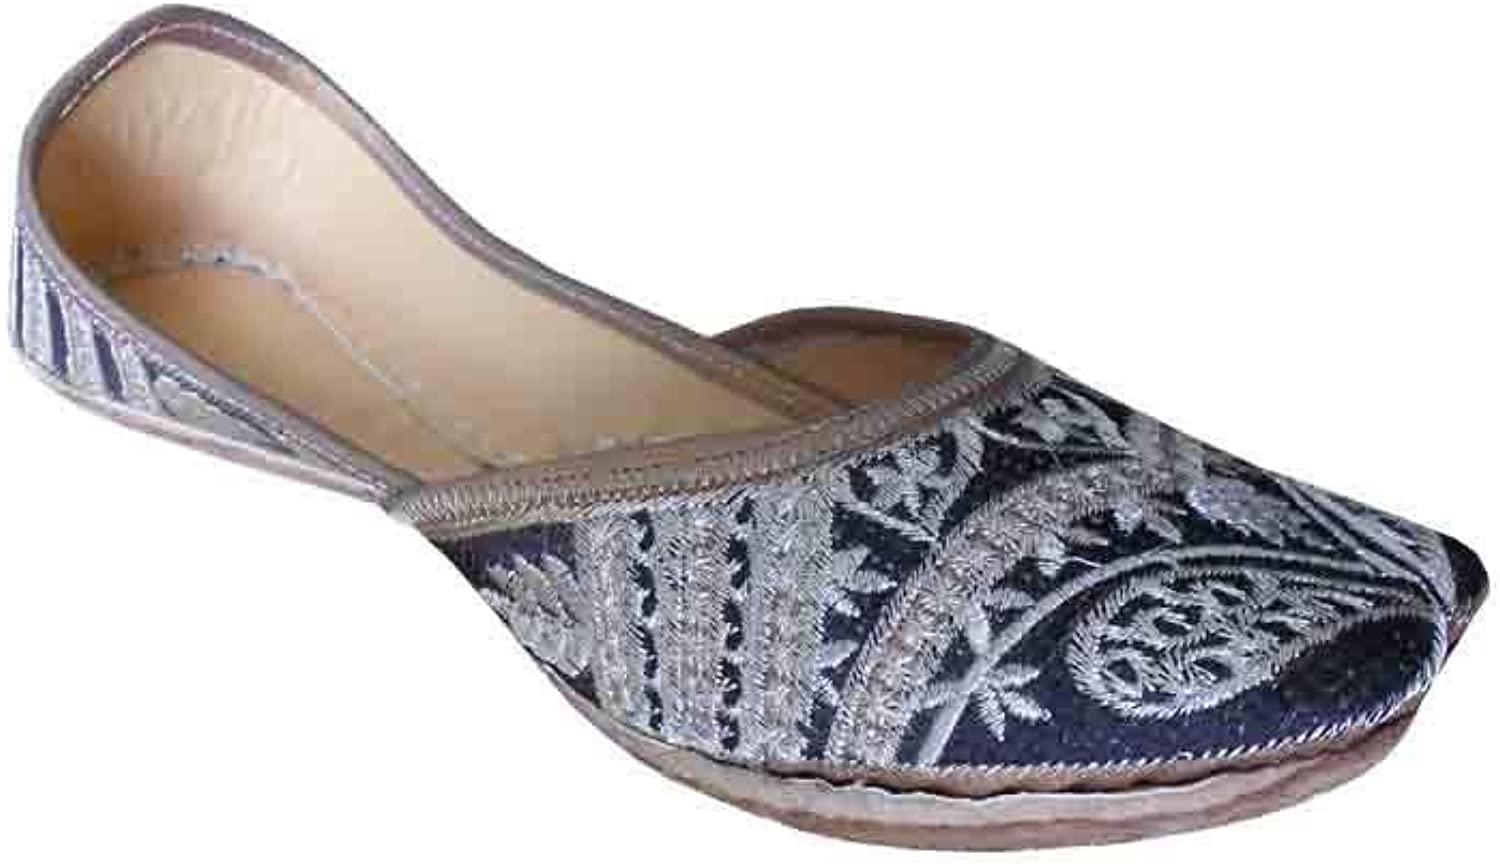 Kalra Creations Mojari Leather Punjabi Flip-Flops Indian Handmade Women shoes Flat